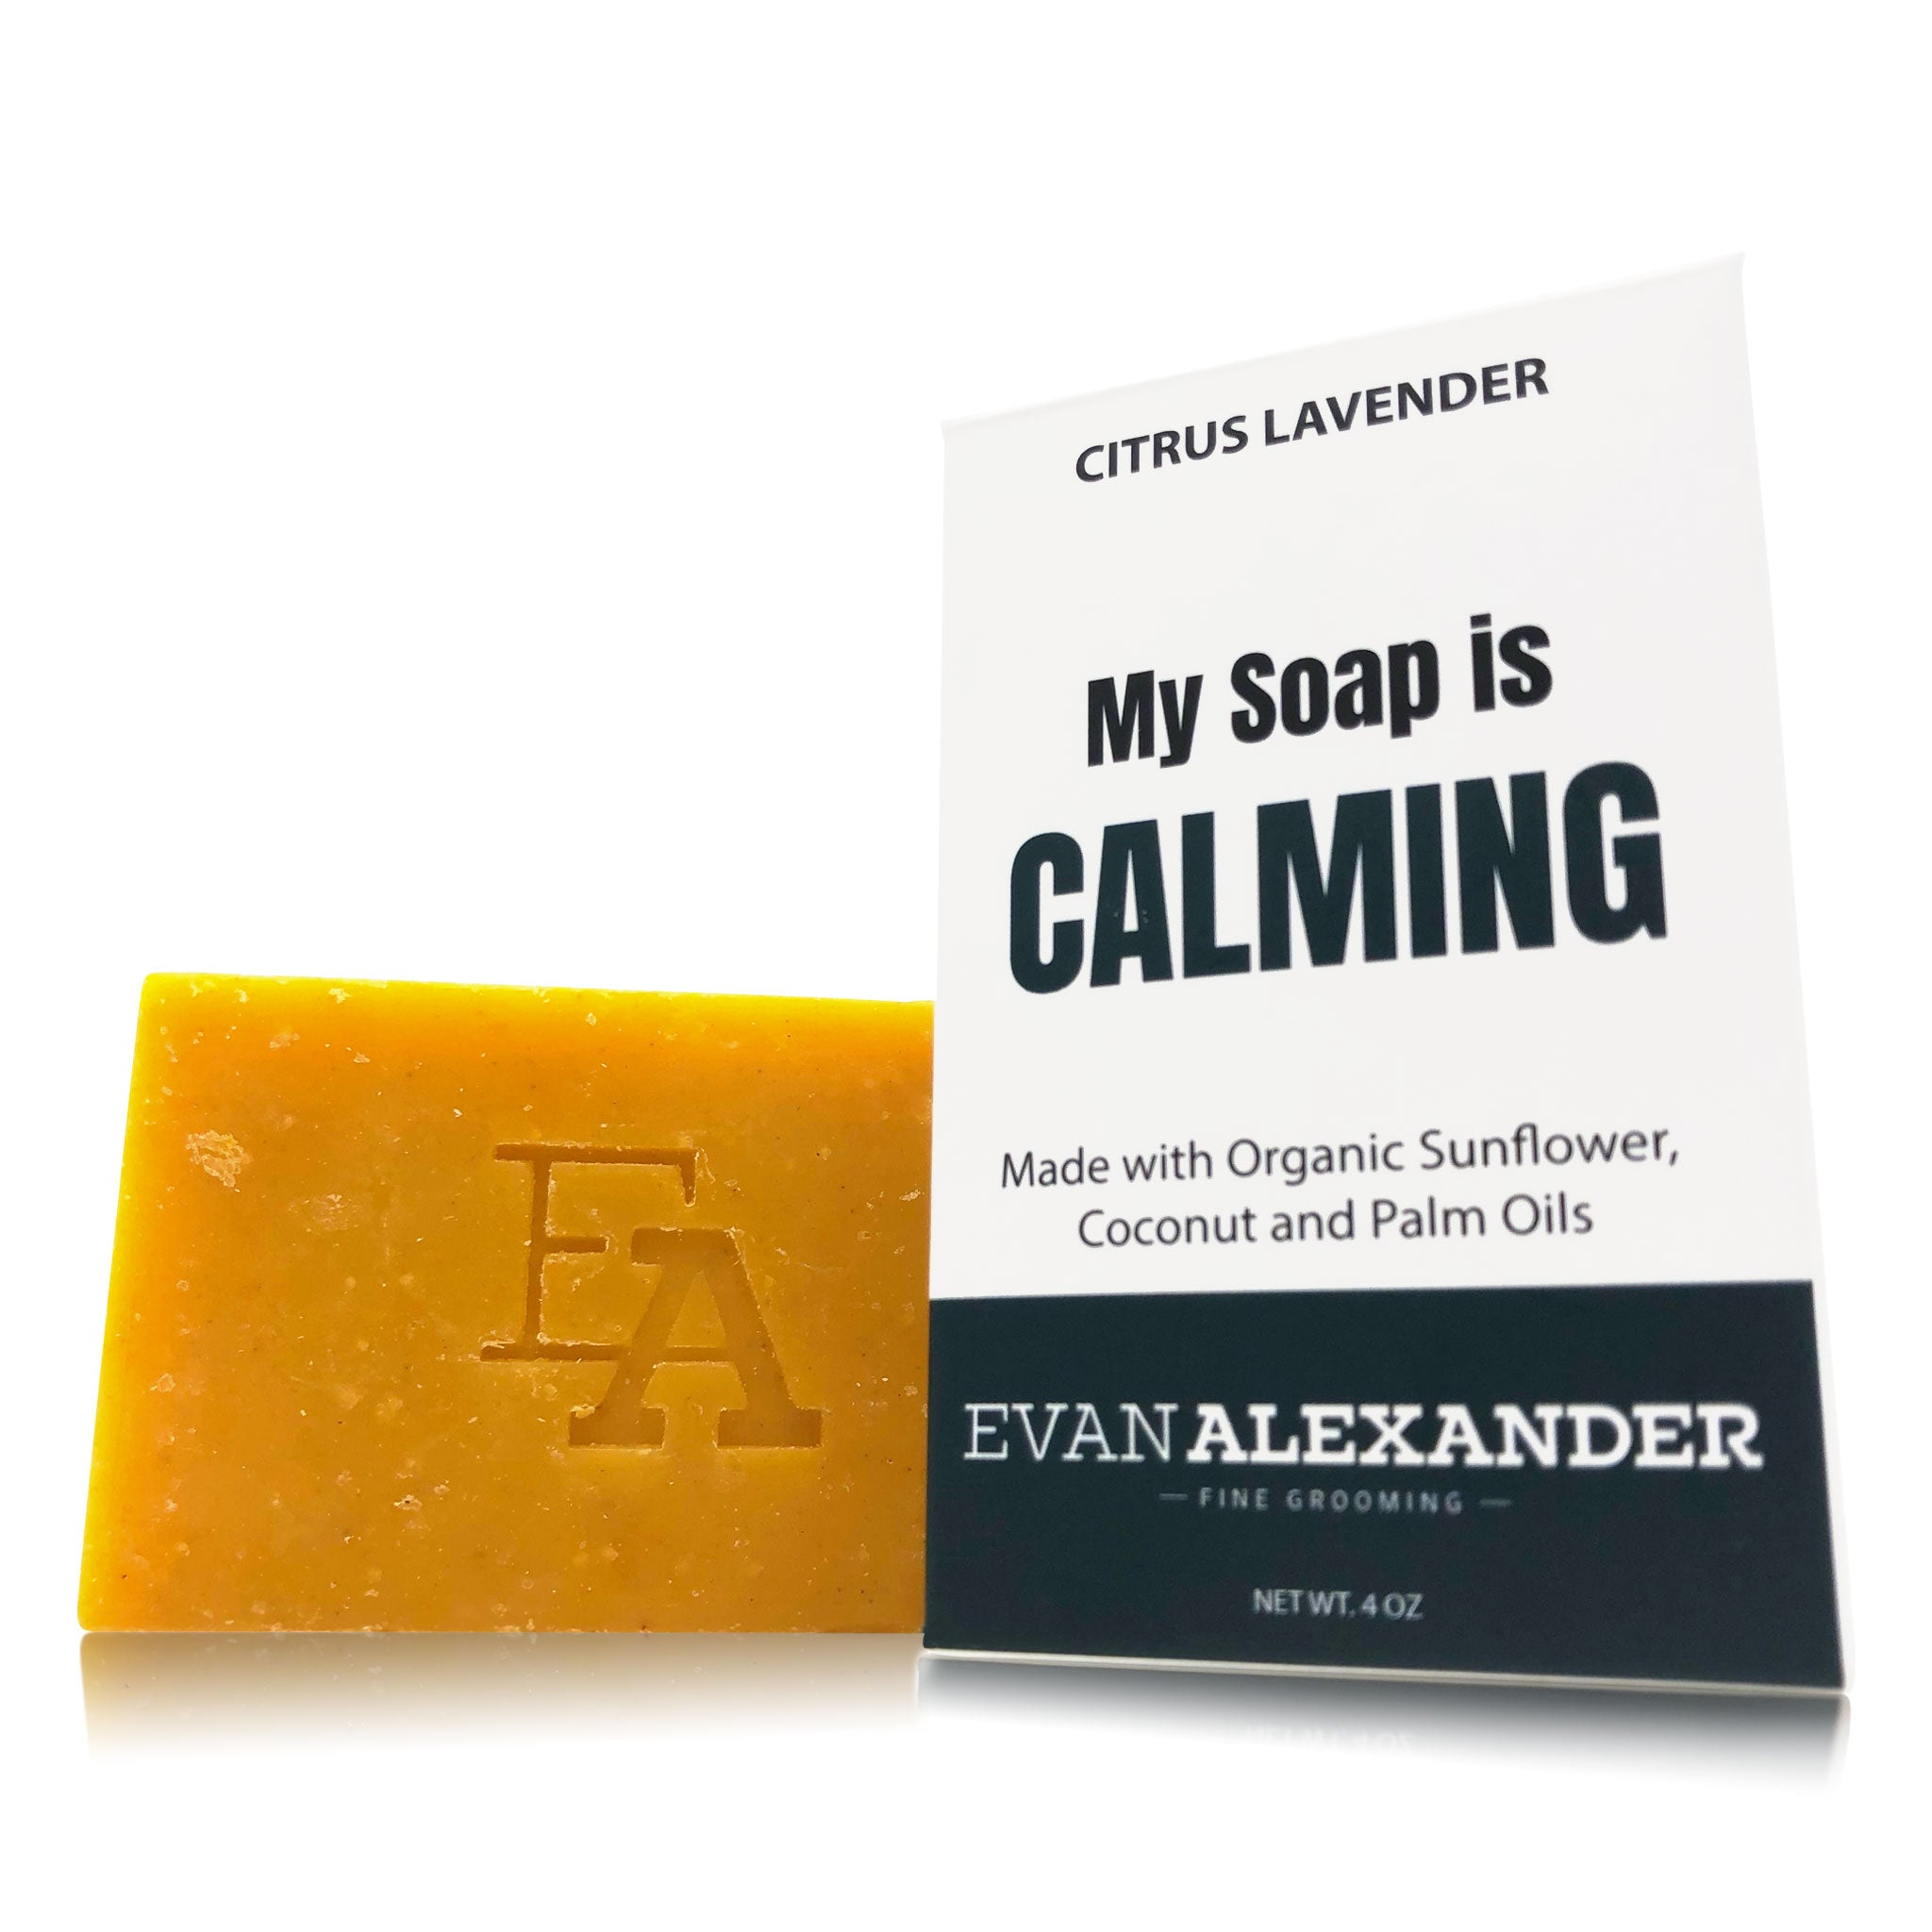 MY Soap is Calming